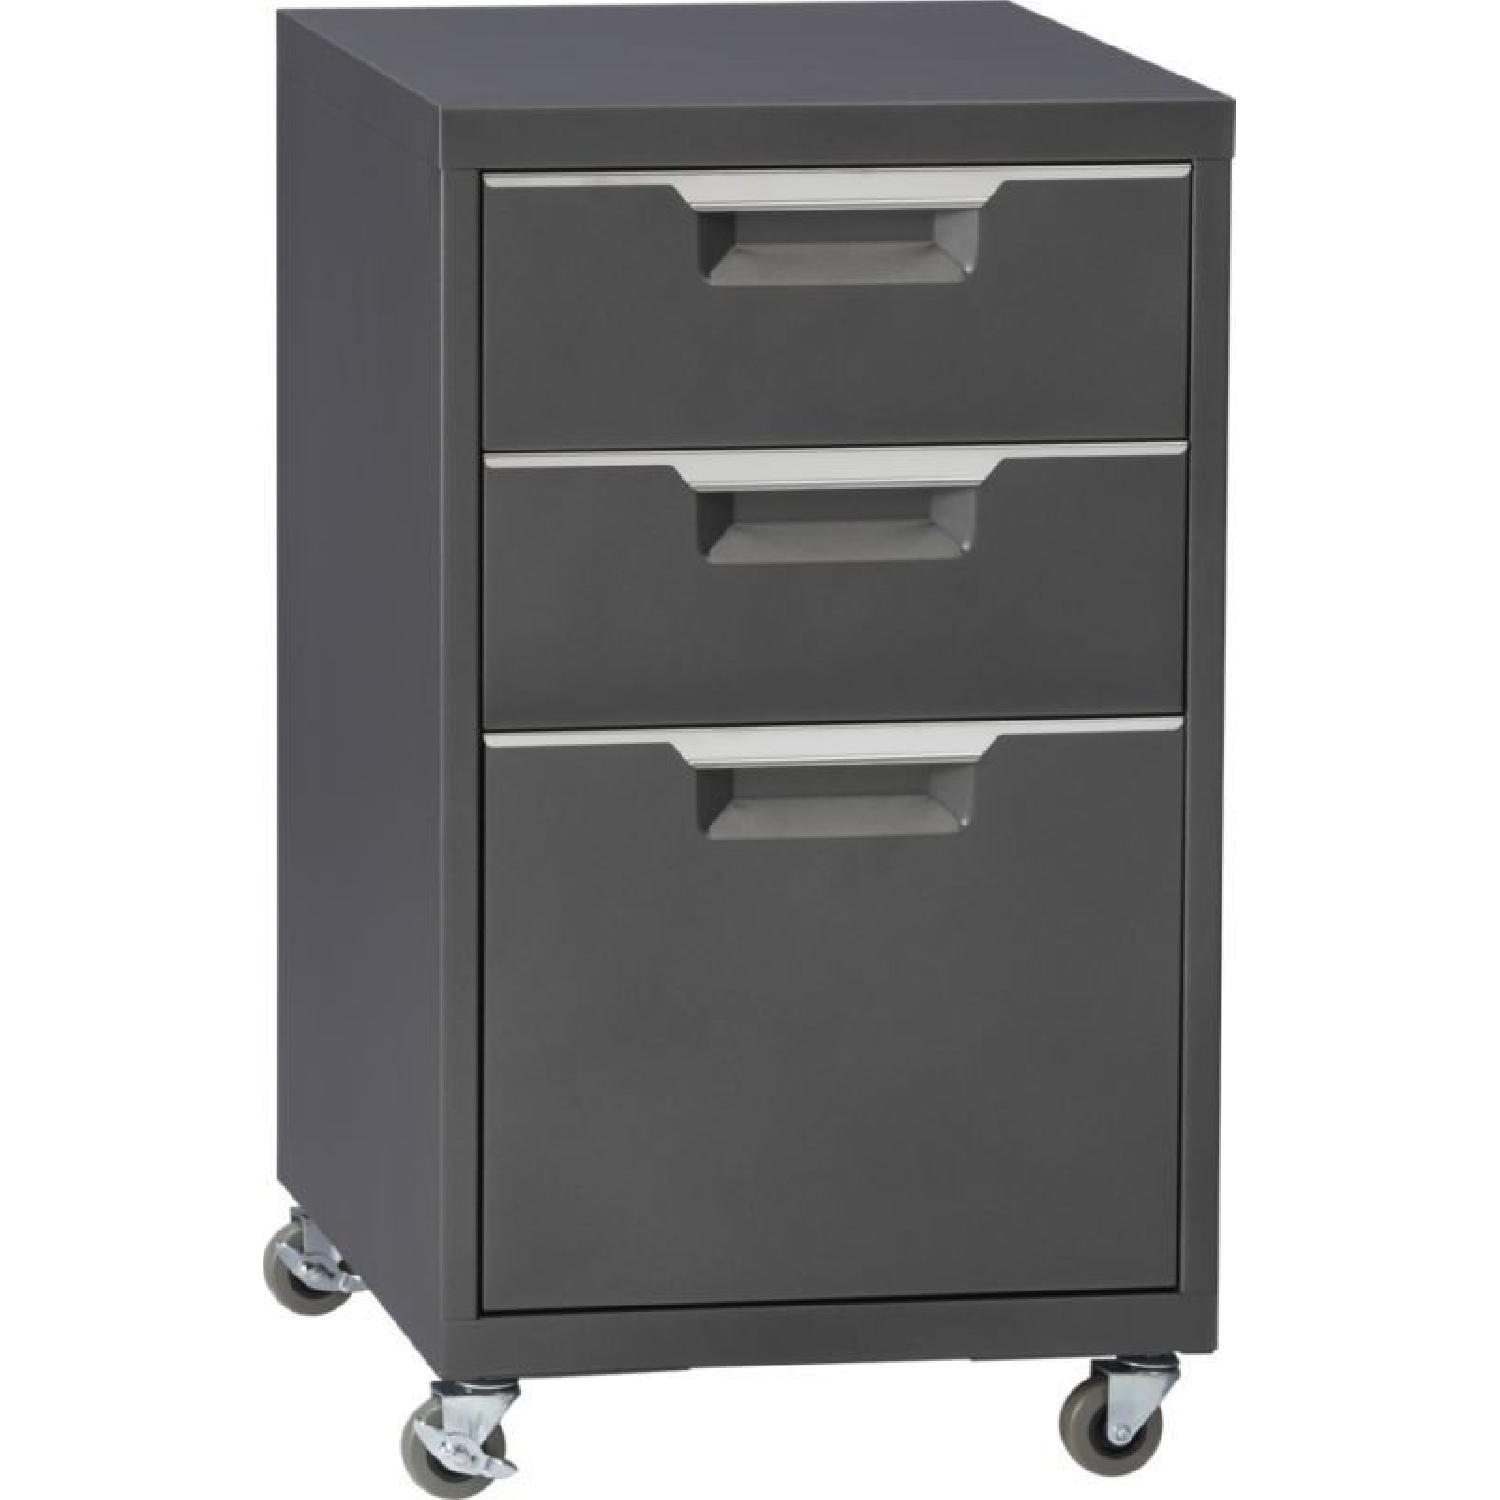 Crate & Barrel Chrome Computer Desk w/ File Cabinet - image-3